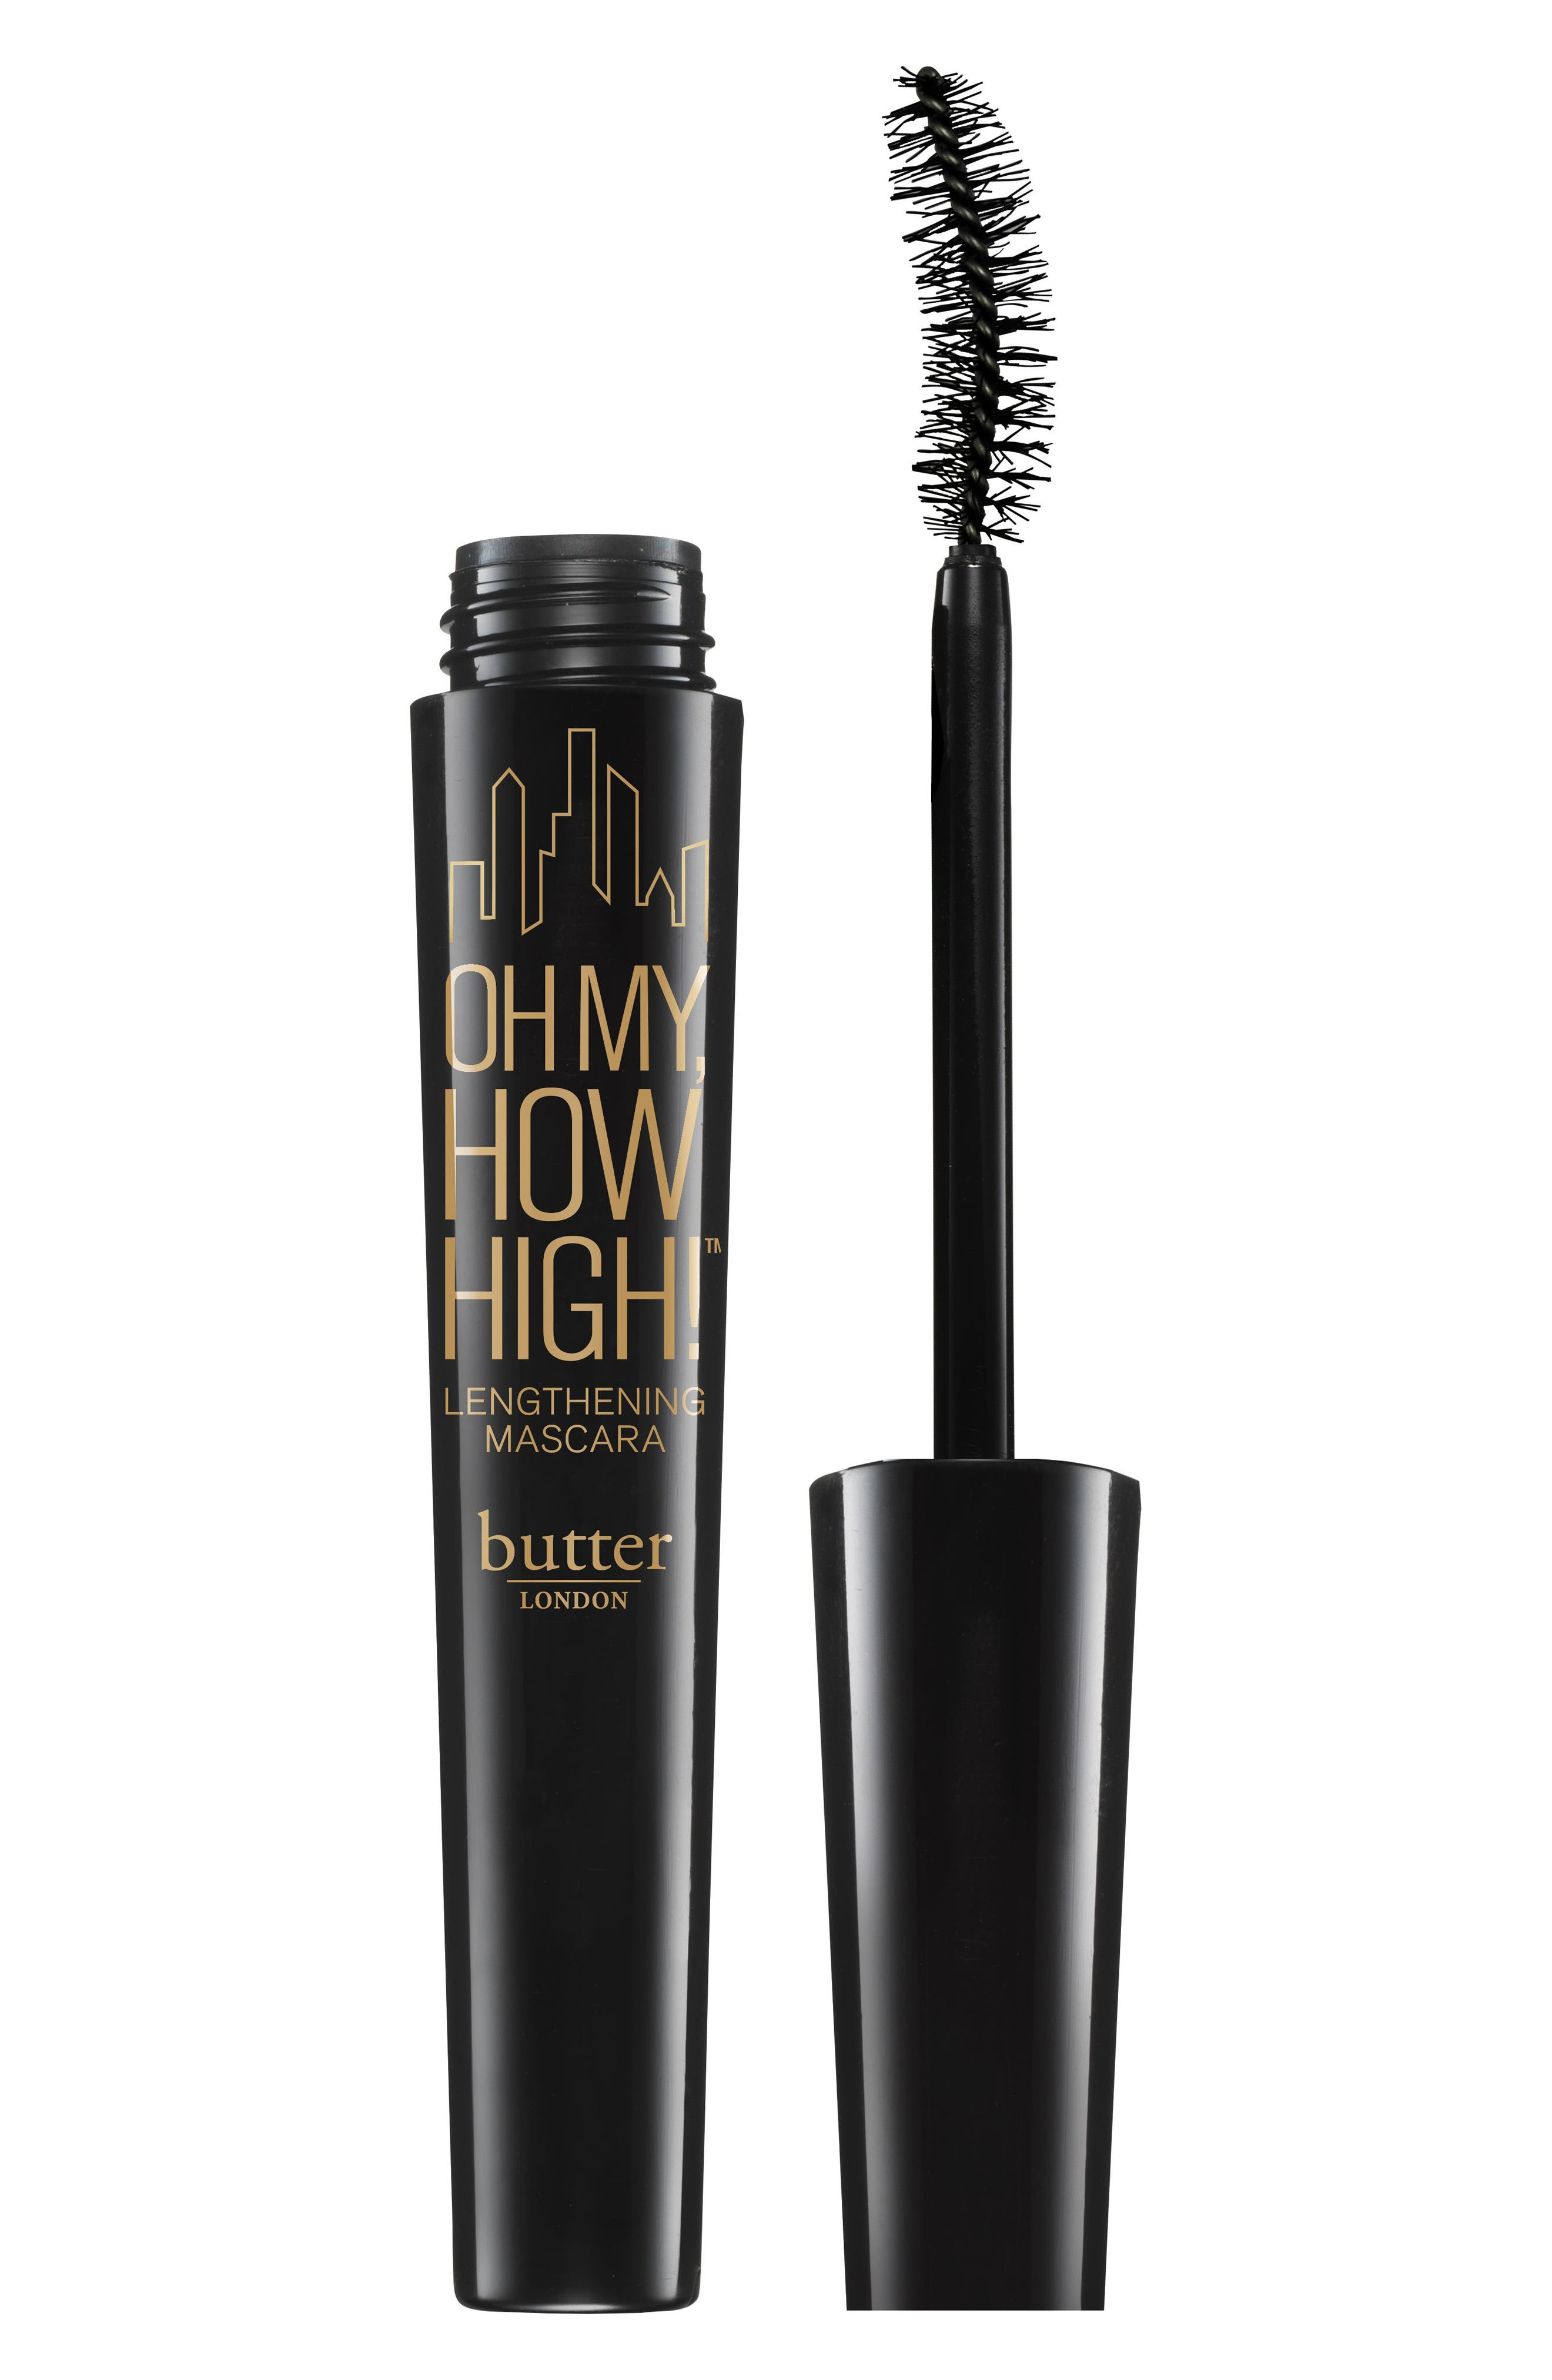 Main Image - butter LONDON Oh My, How High! Lengthening Mascara